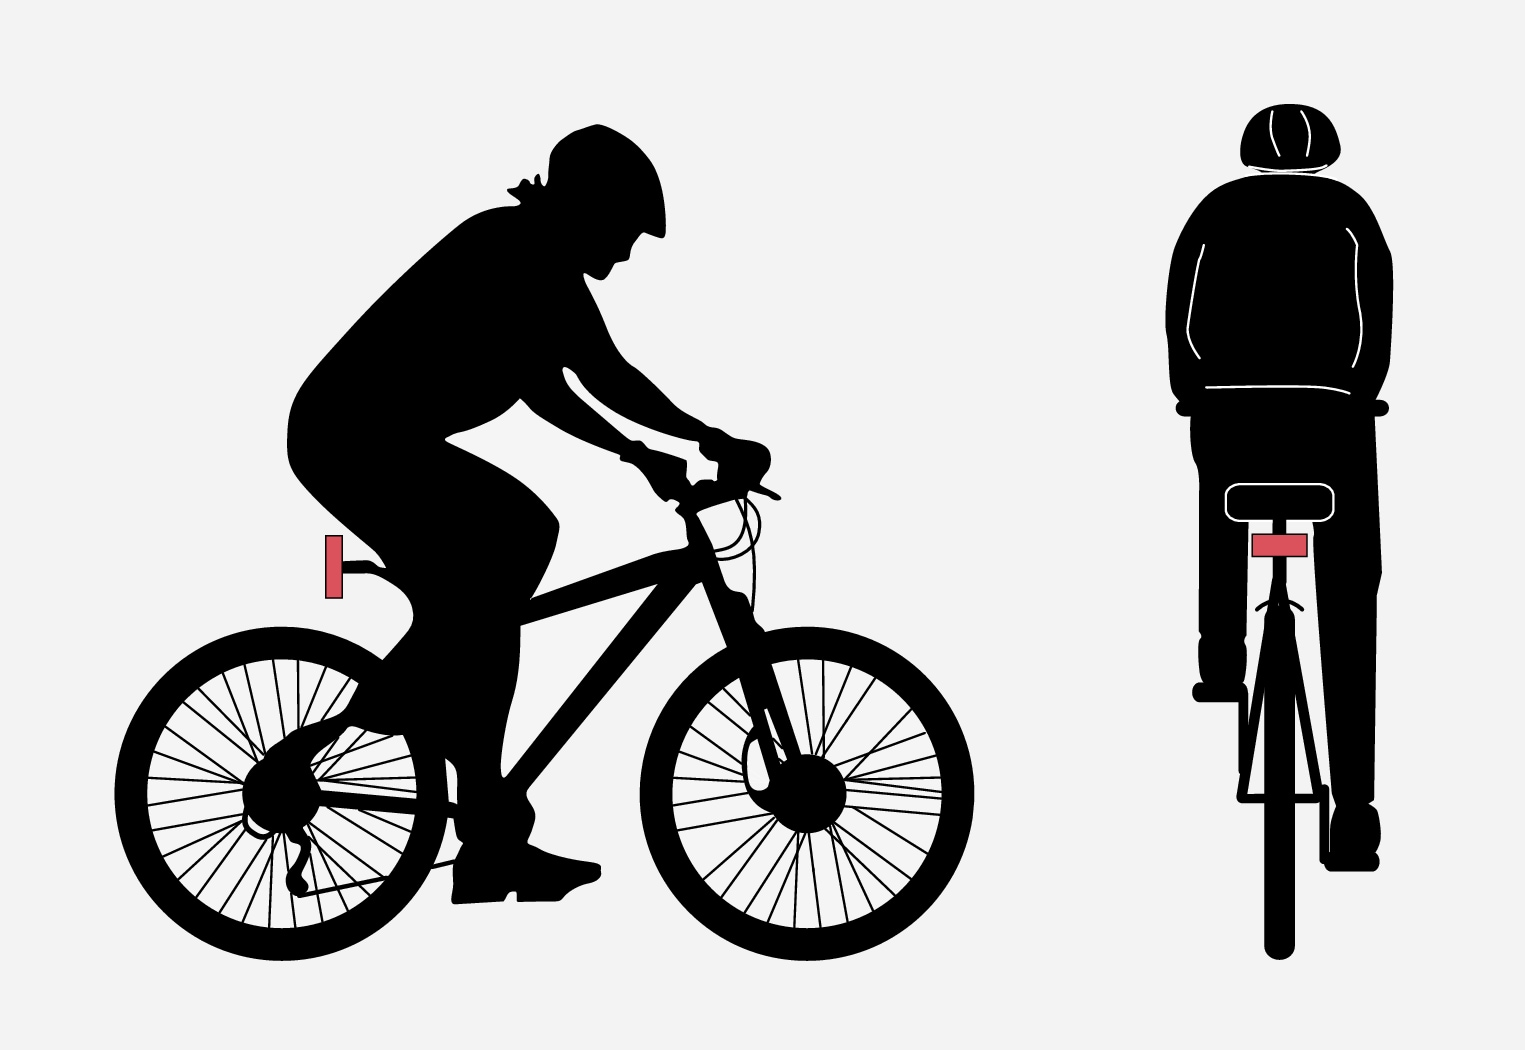 P5-1507-City Safety, detection of cyclists